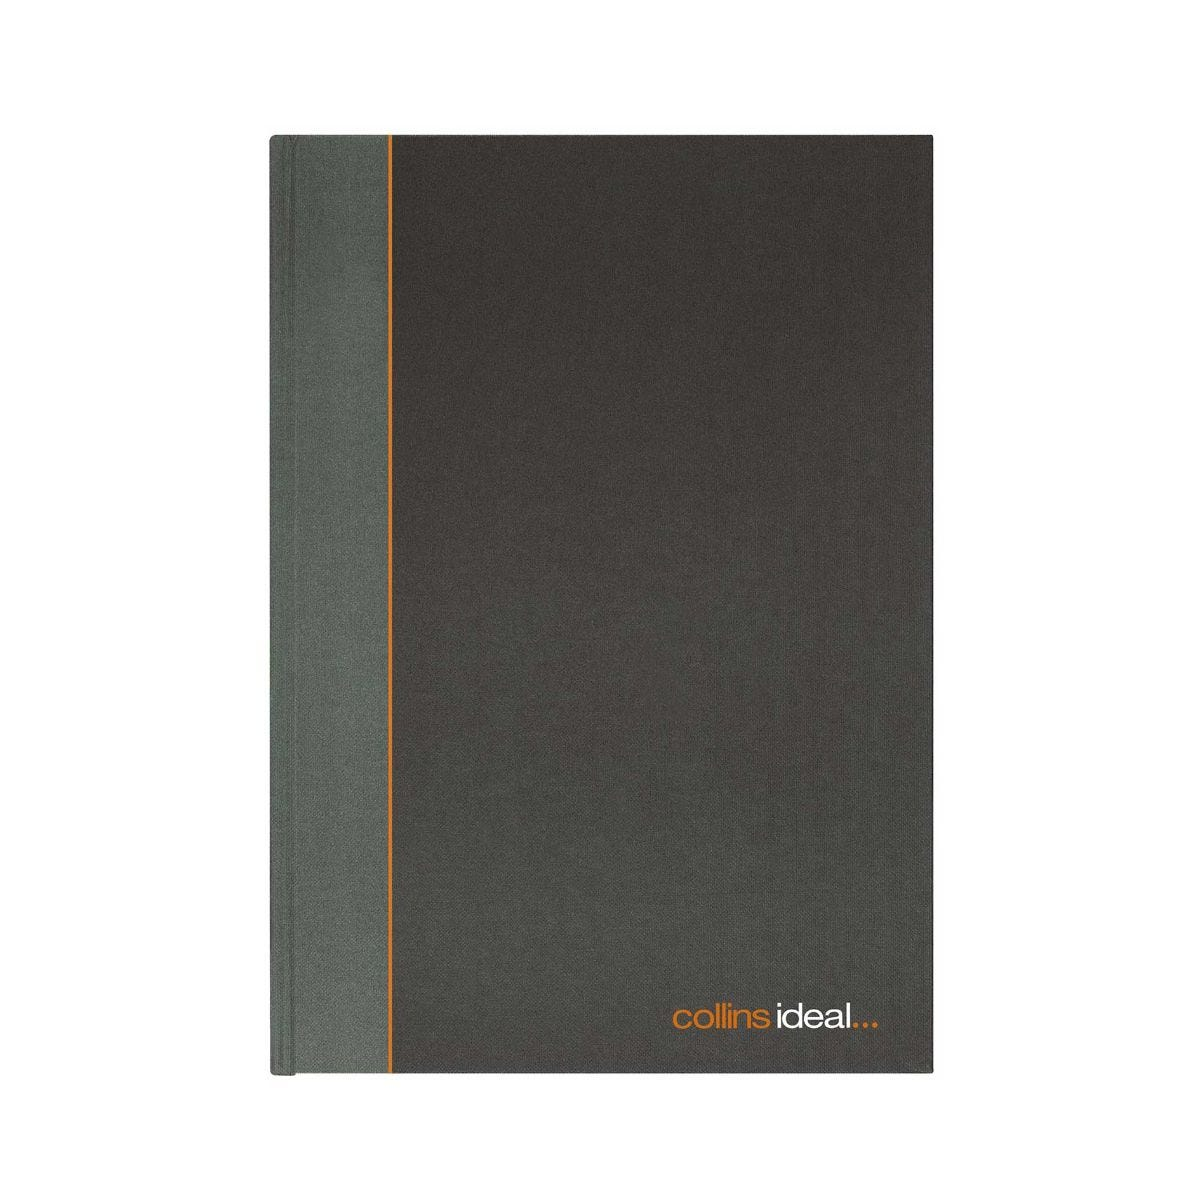 Collins Ideal Case Bound Single Cash Book A5, 461